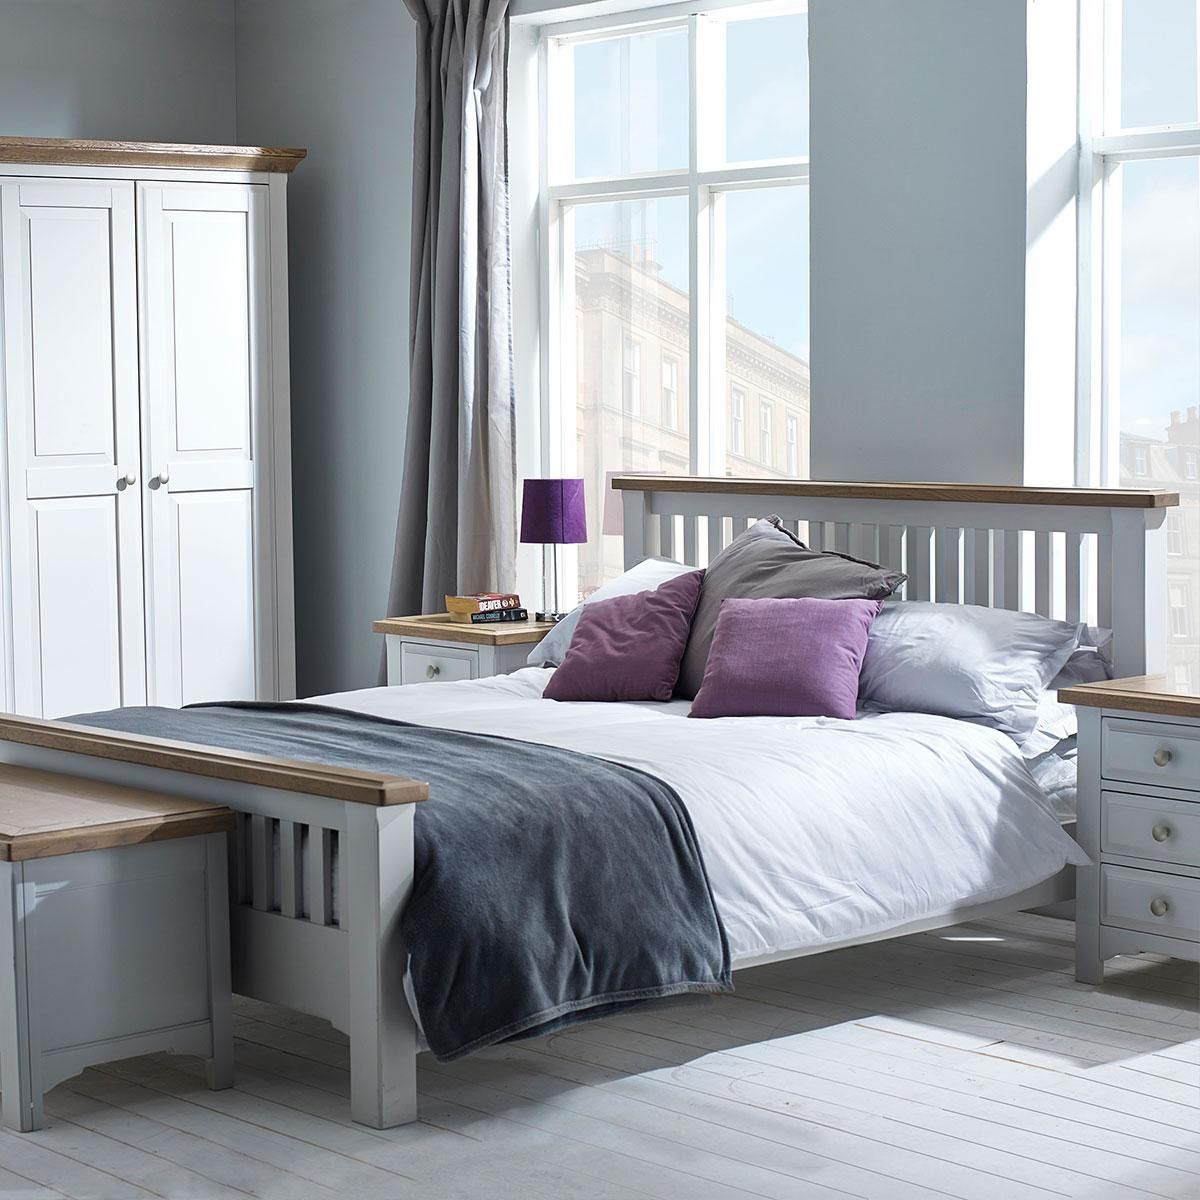 grey painted wall painted bedroom furniture white bed cover white